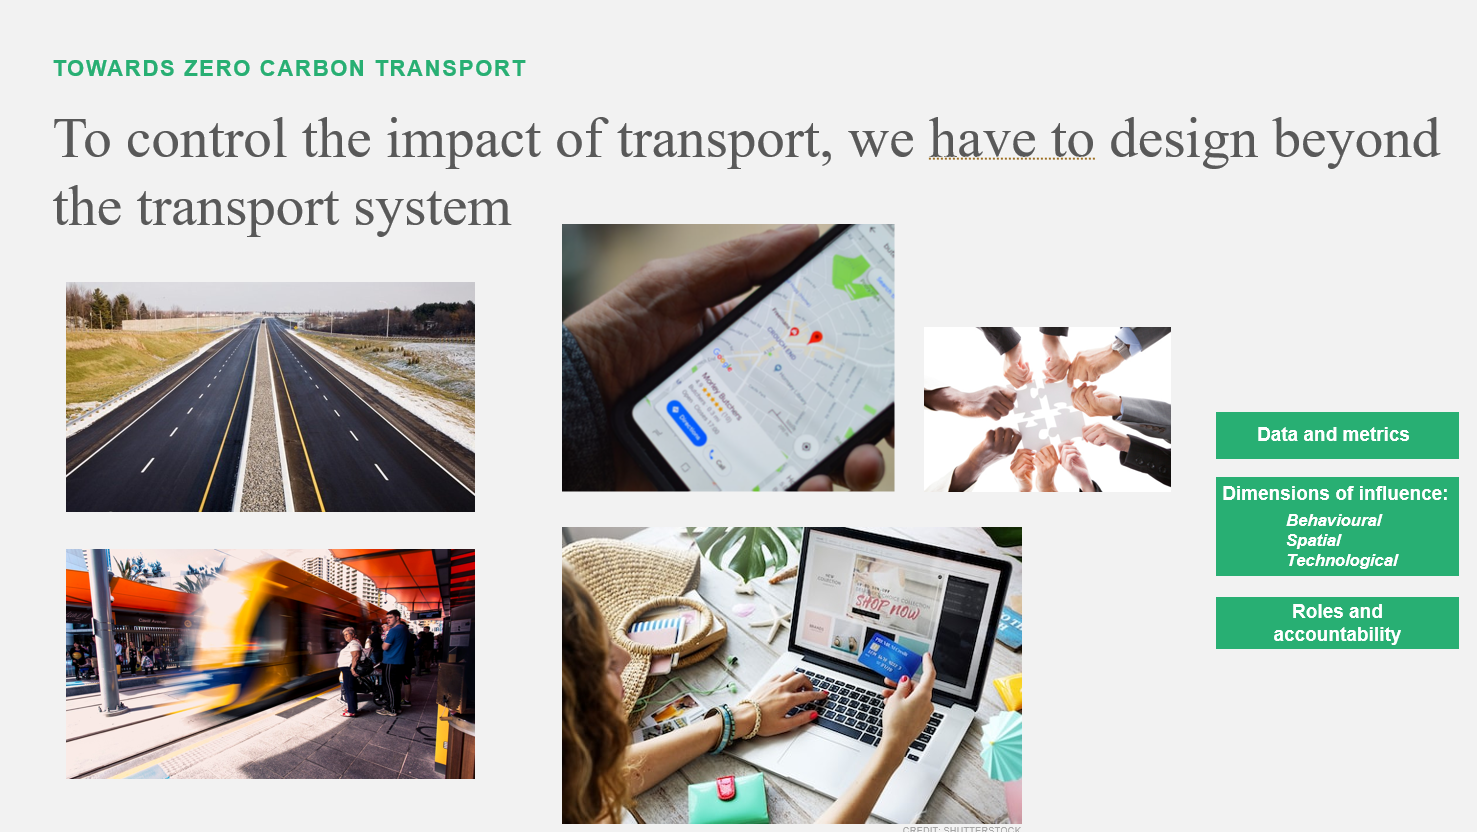 Images associated with transport, like roads and trains